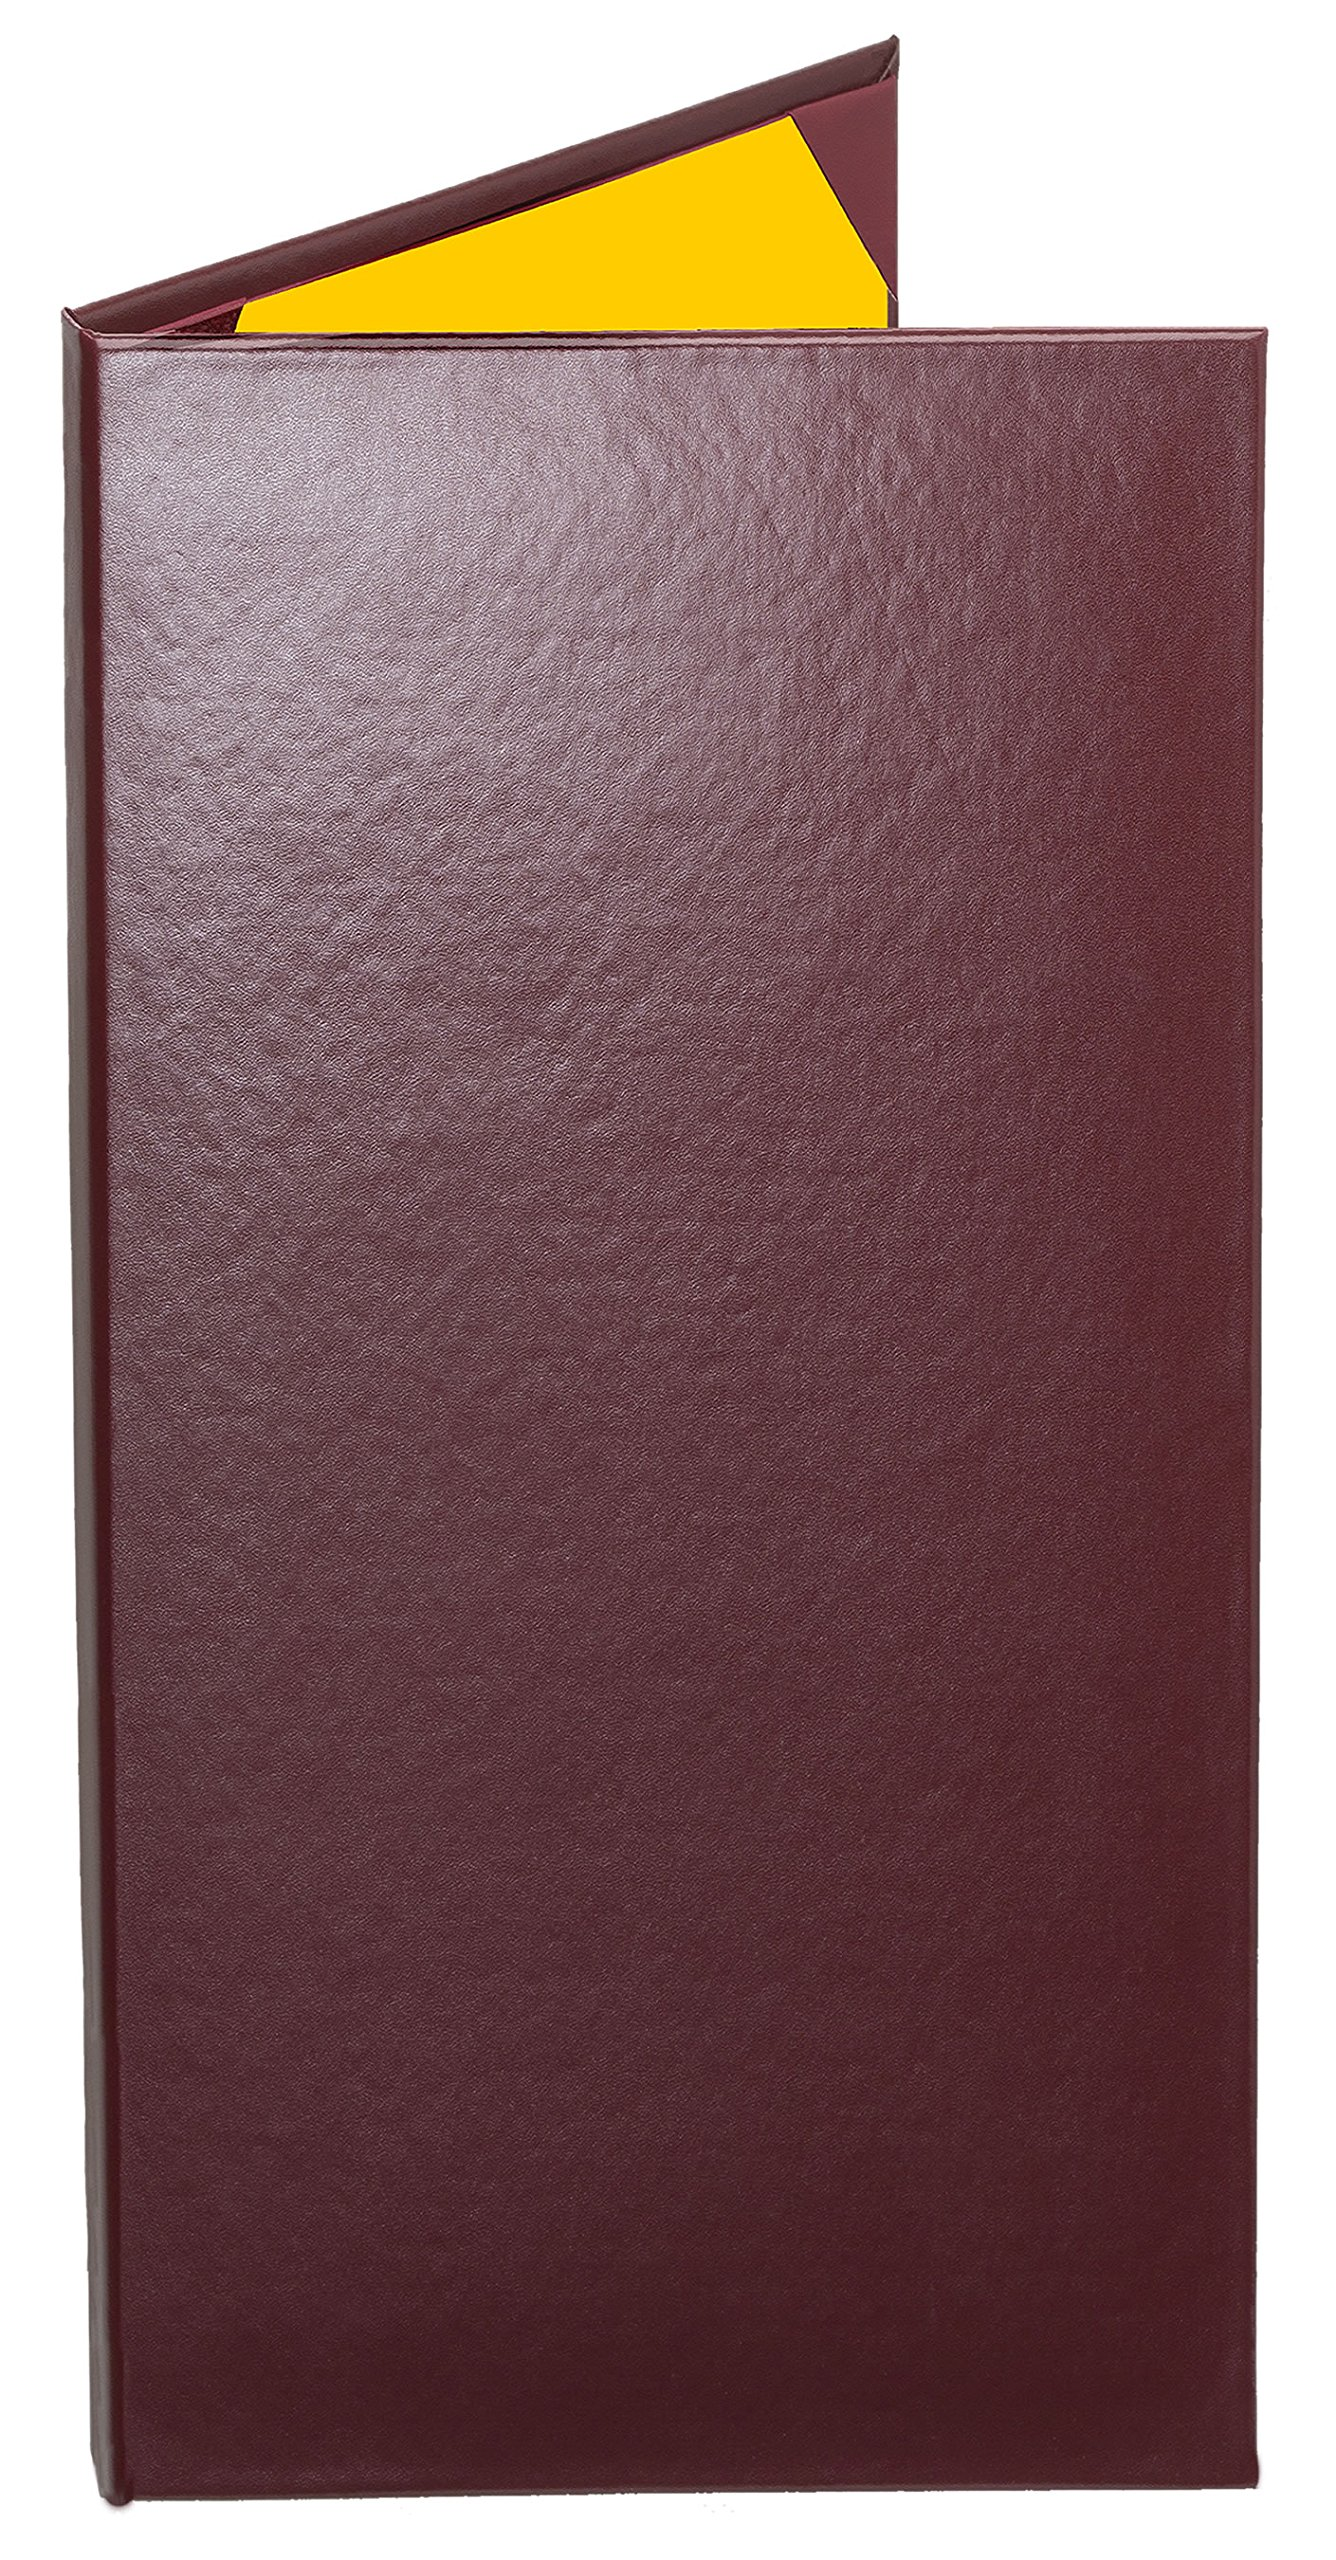 Case of 5 Cascade Casebound ''Tall & Thin'' Menu Covers #8097 BURGUNDY DOUBLE PANEL - 2-VIEW - 4.25'' WIDE x 11'' TALL. Interior album-style corners. Search MenuCoverMan in Amazon.